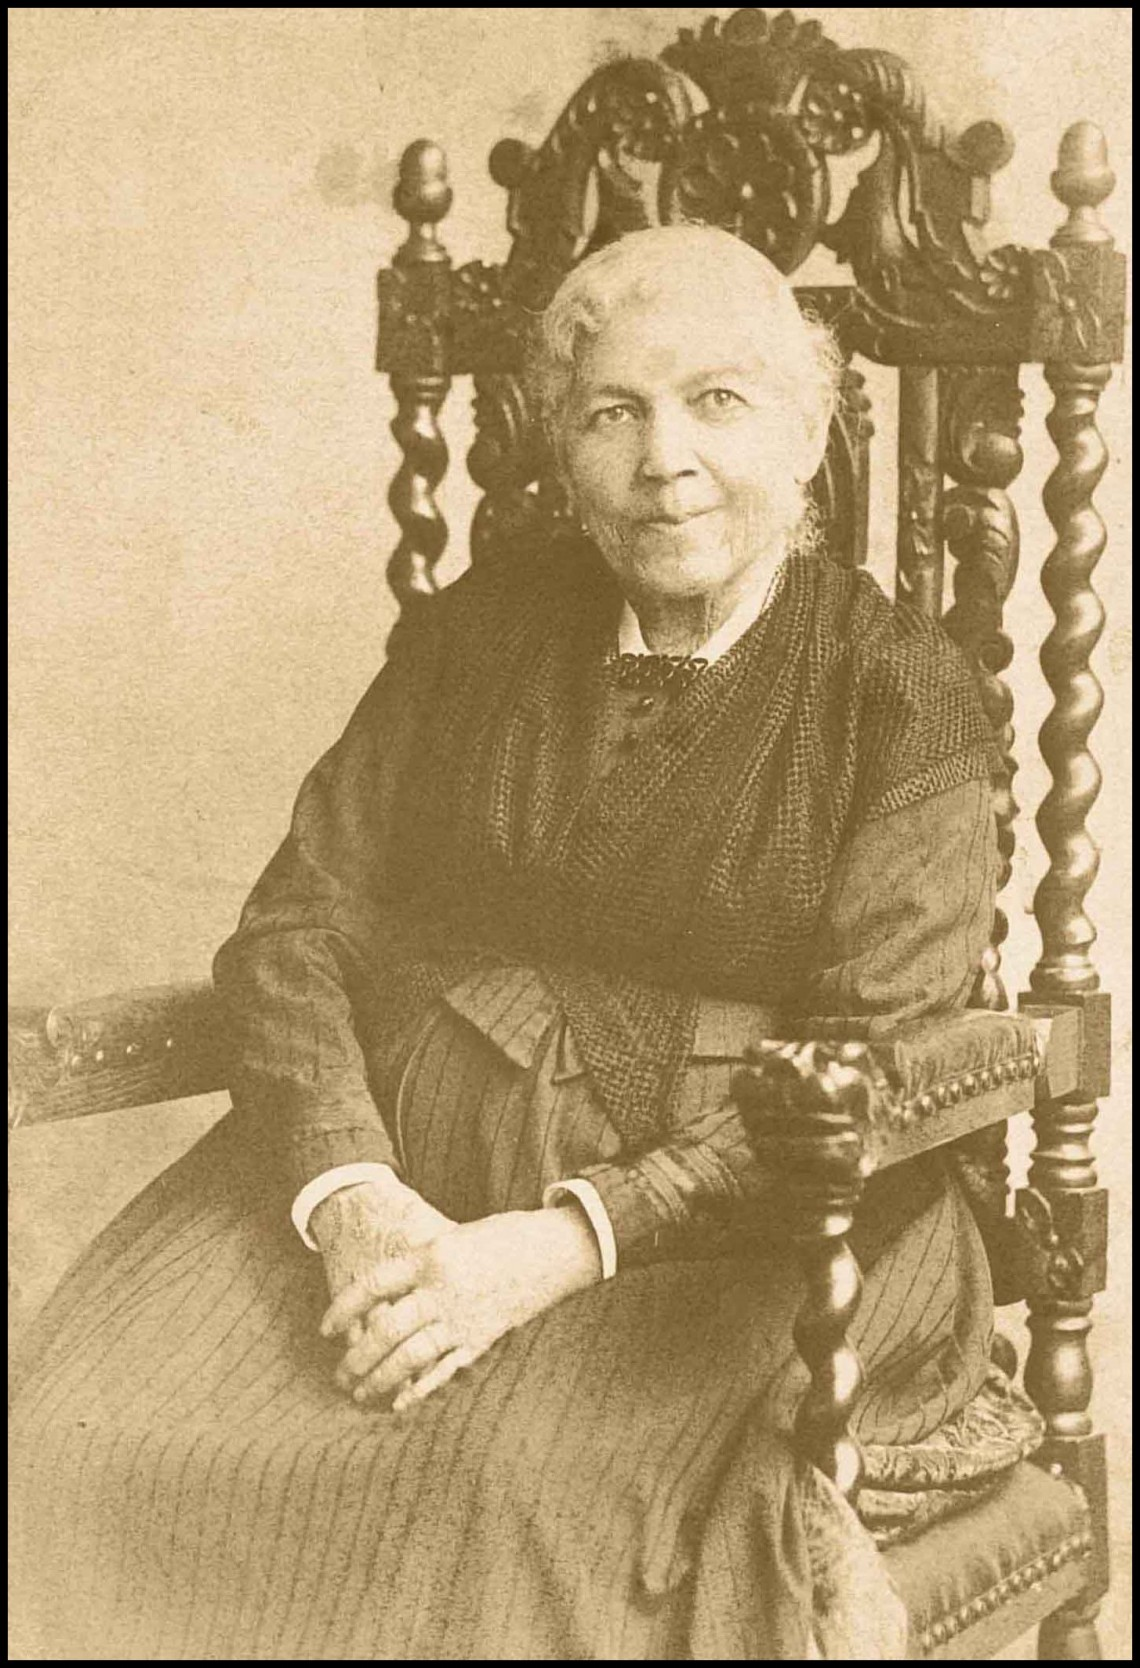 harriet jacobs life of a slave girl essay  harriet jacobs life of a slave girl essay